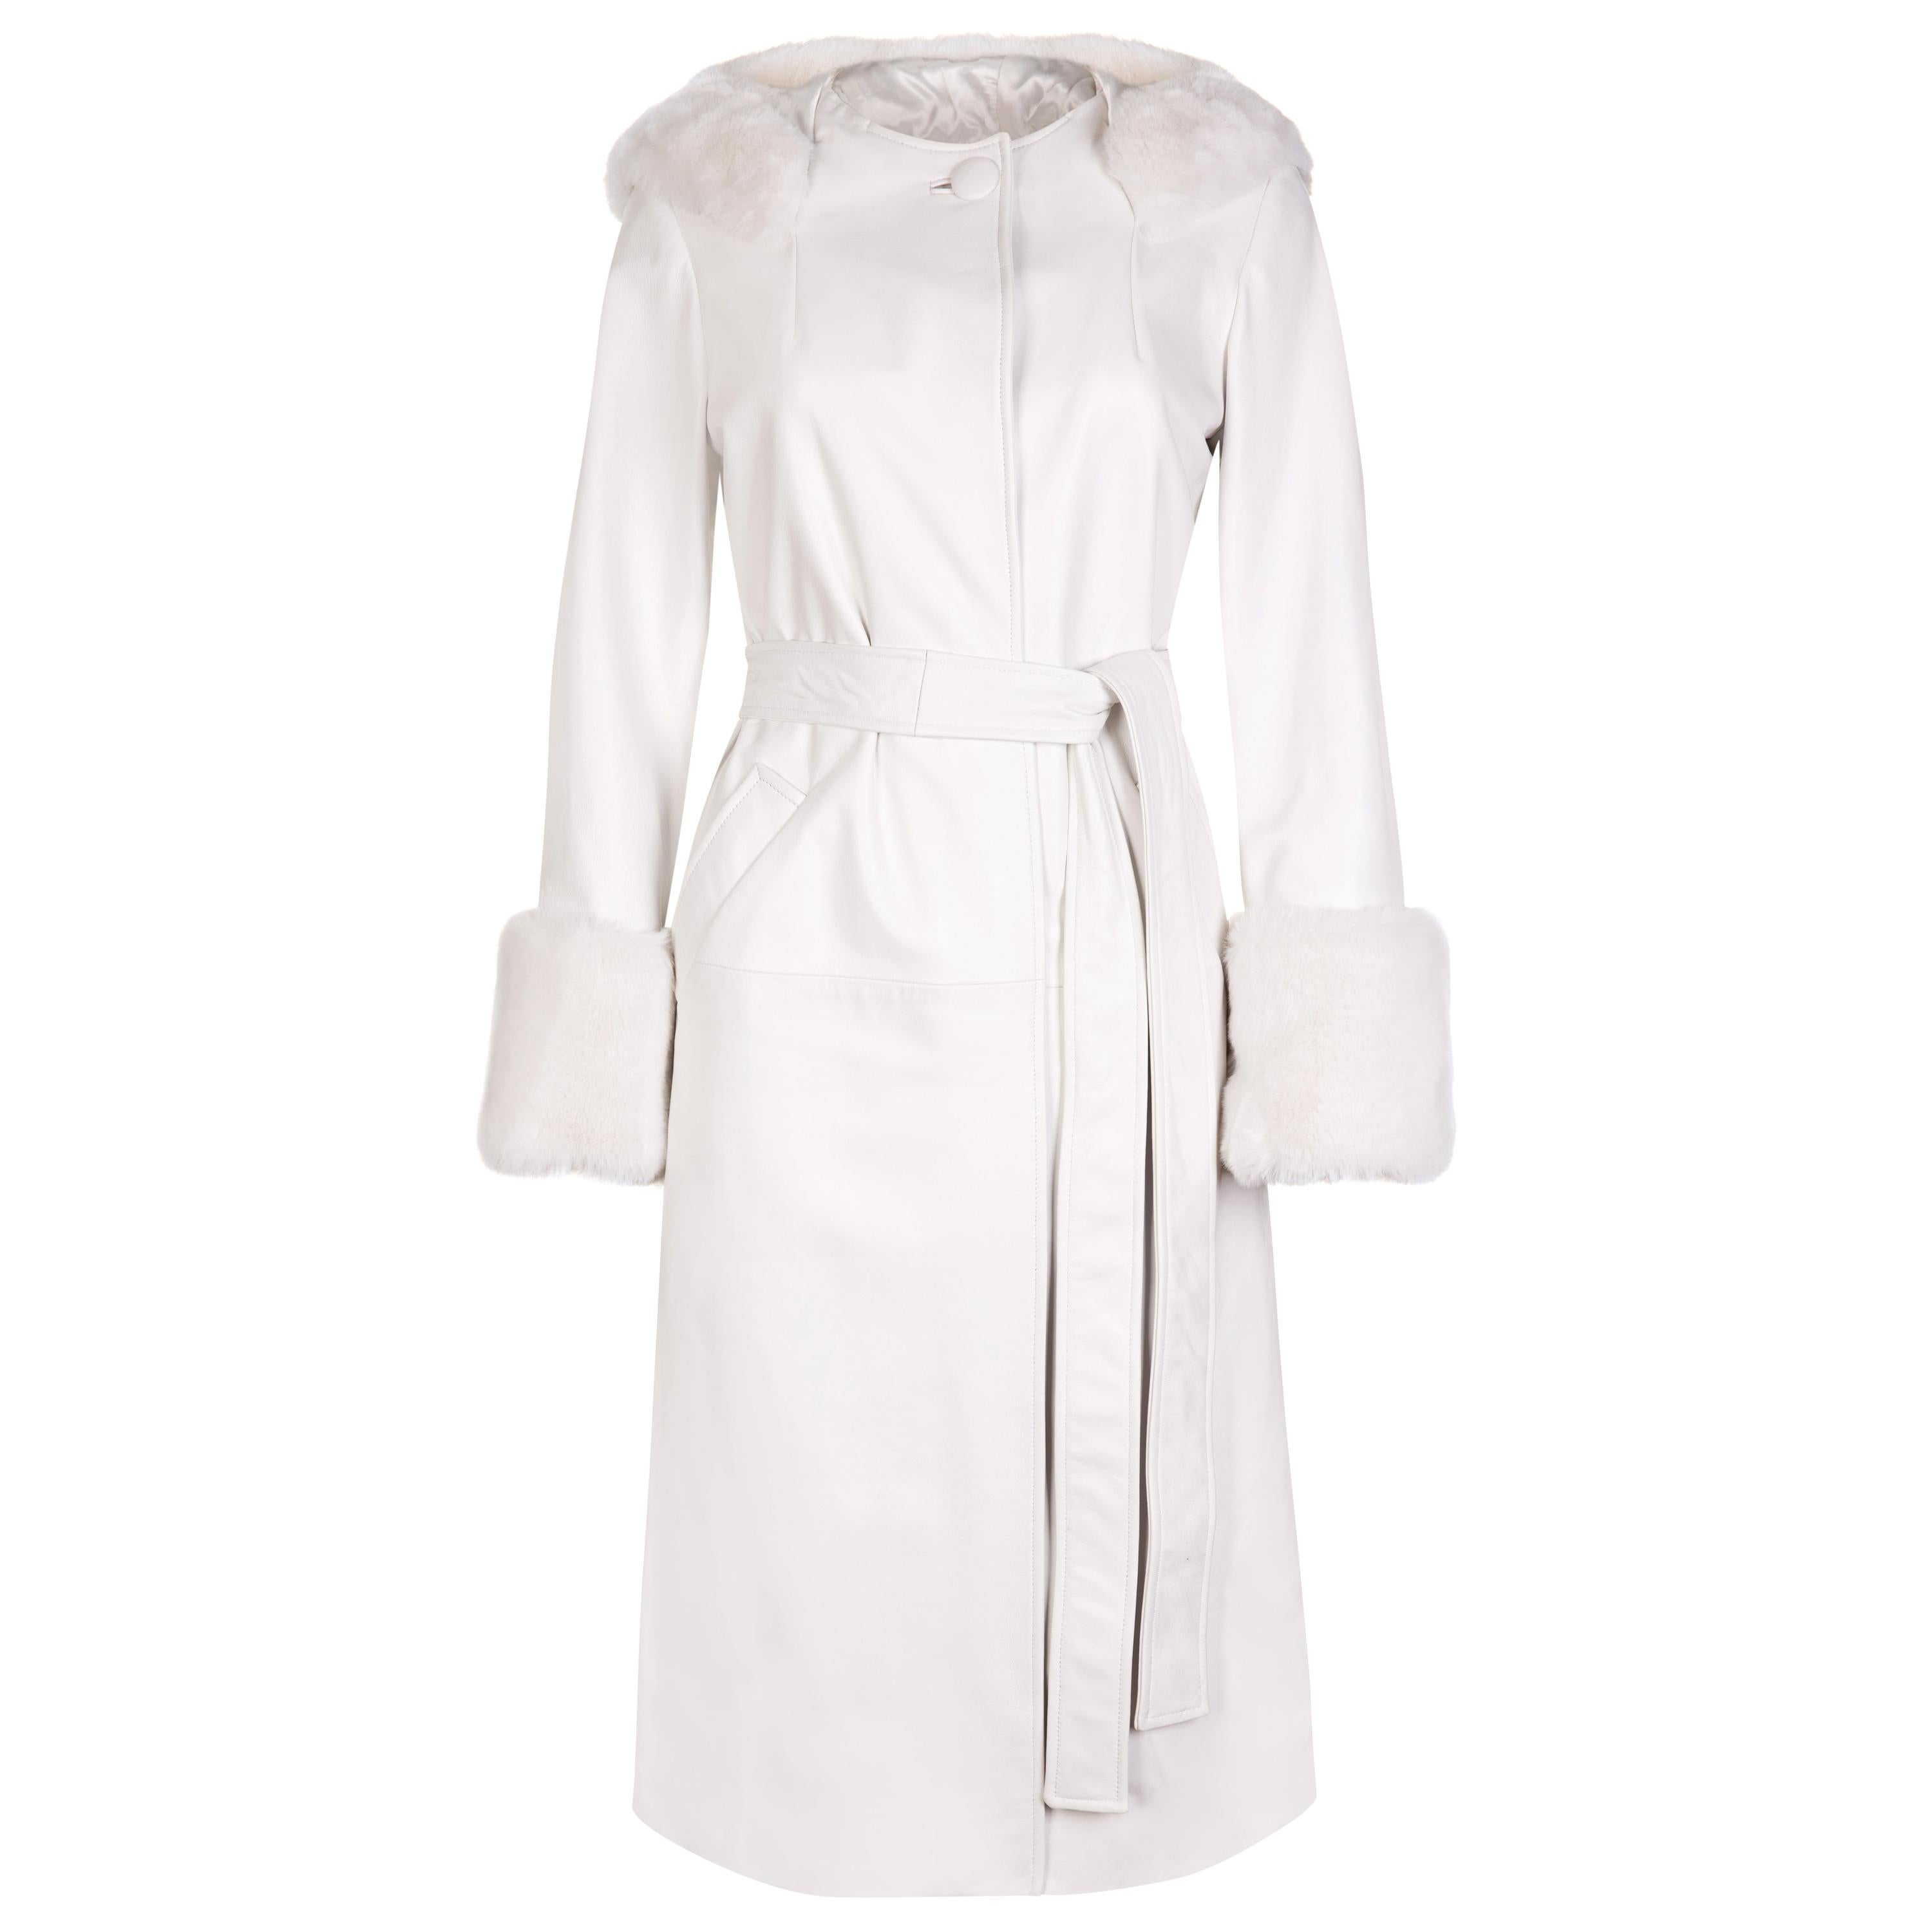 Verheyen Aurora Hooded Leather Trench Coat in White with Faux Fur - Size uk 12